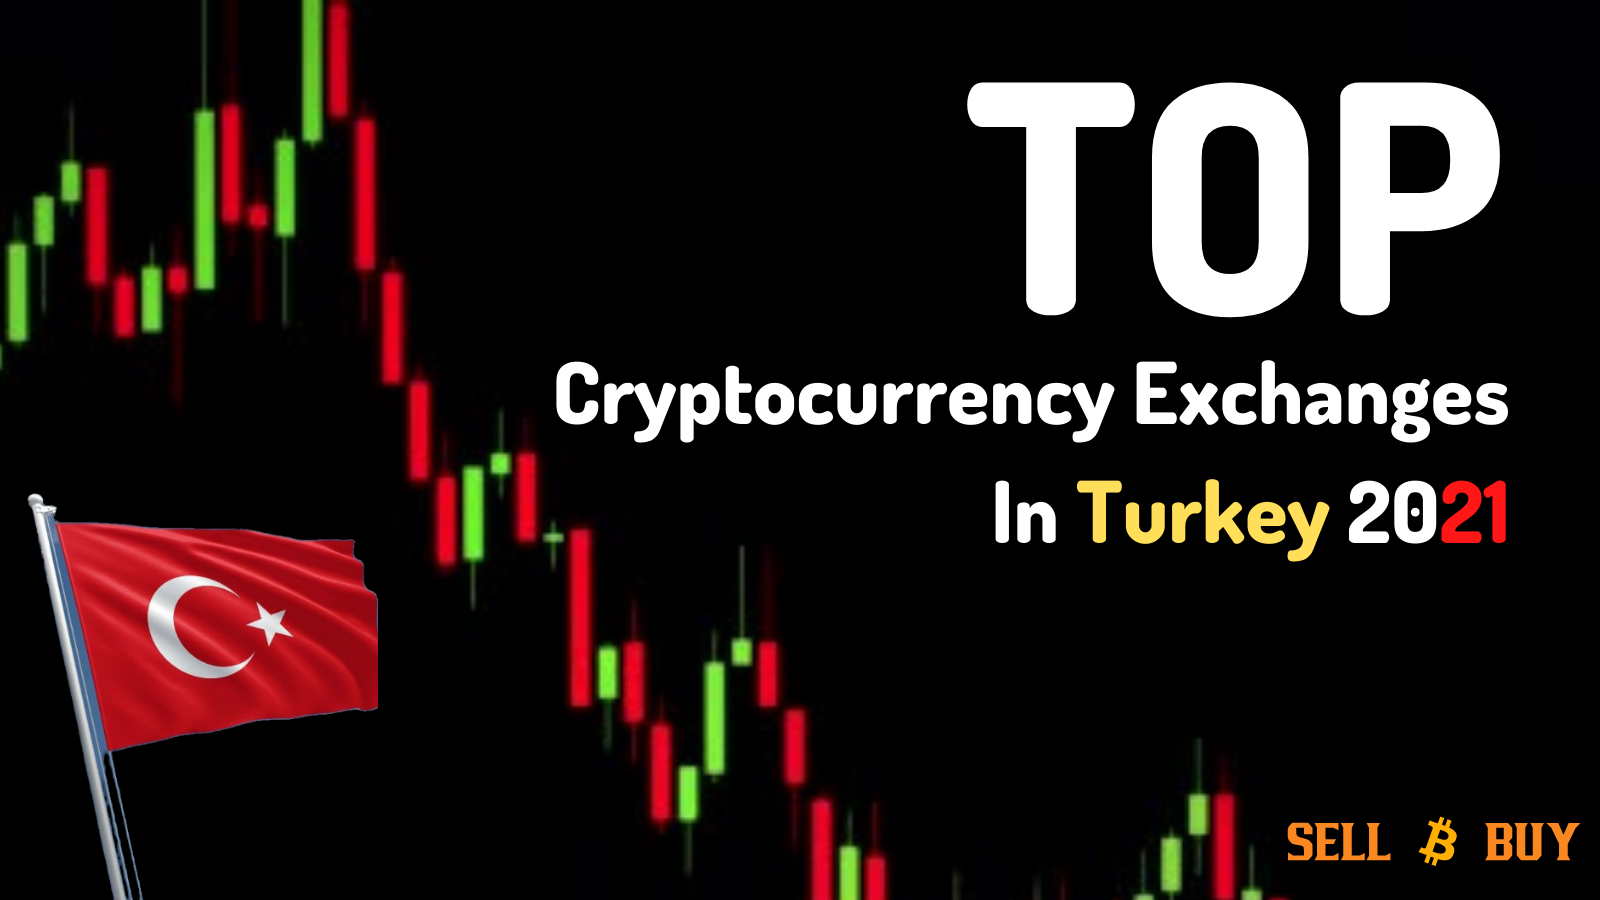 Top 10 Cryptocurrency Exchanges To Buy Bitcoin In Turkey 2021